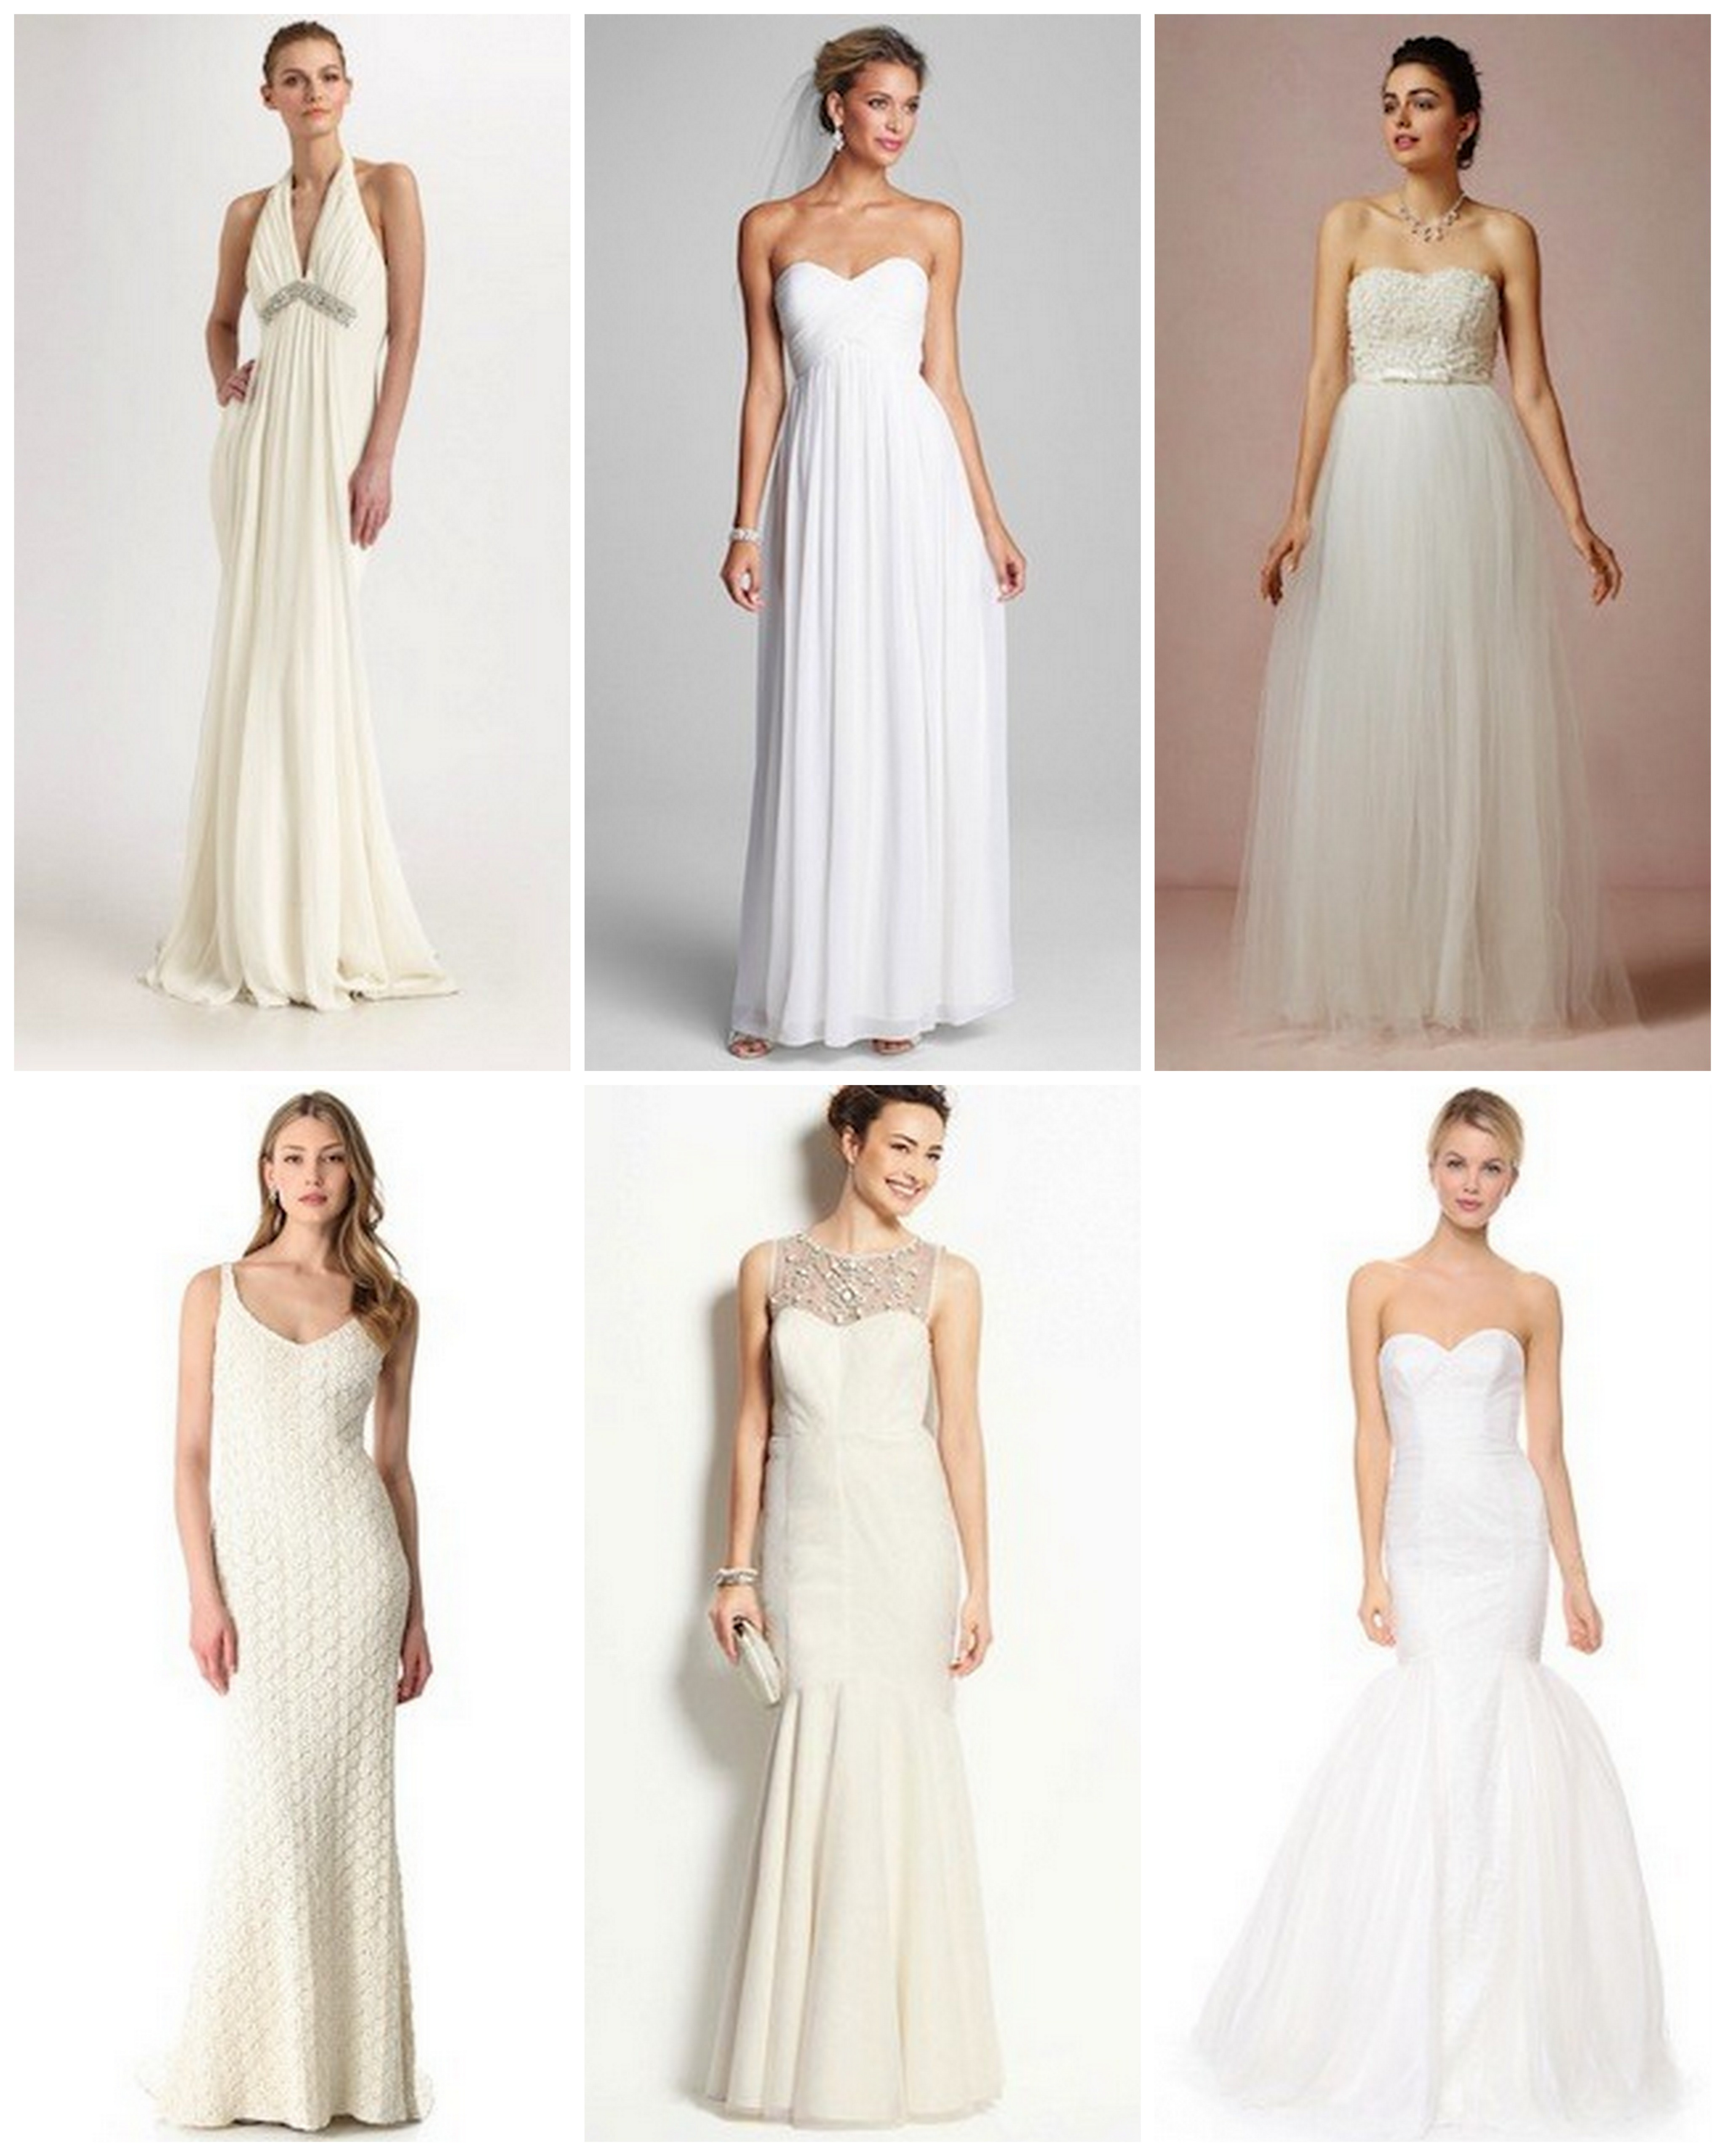 The Best Wedding Dresses For Any Body Type